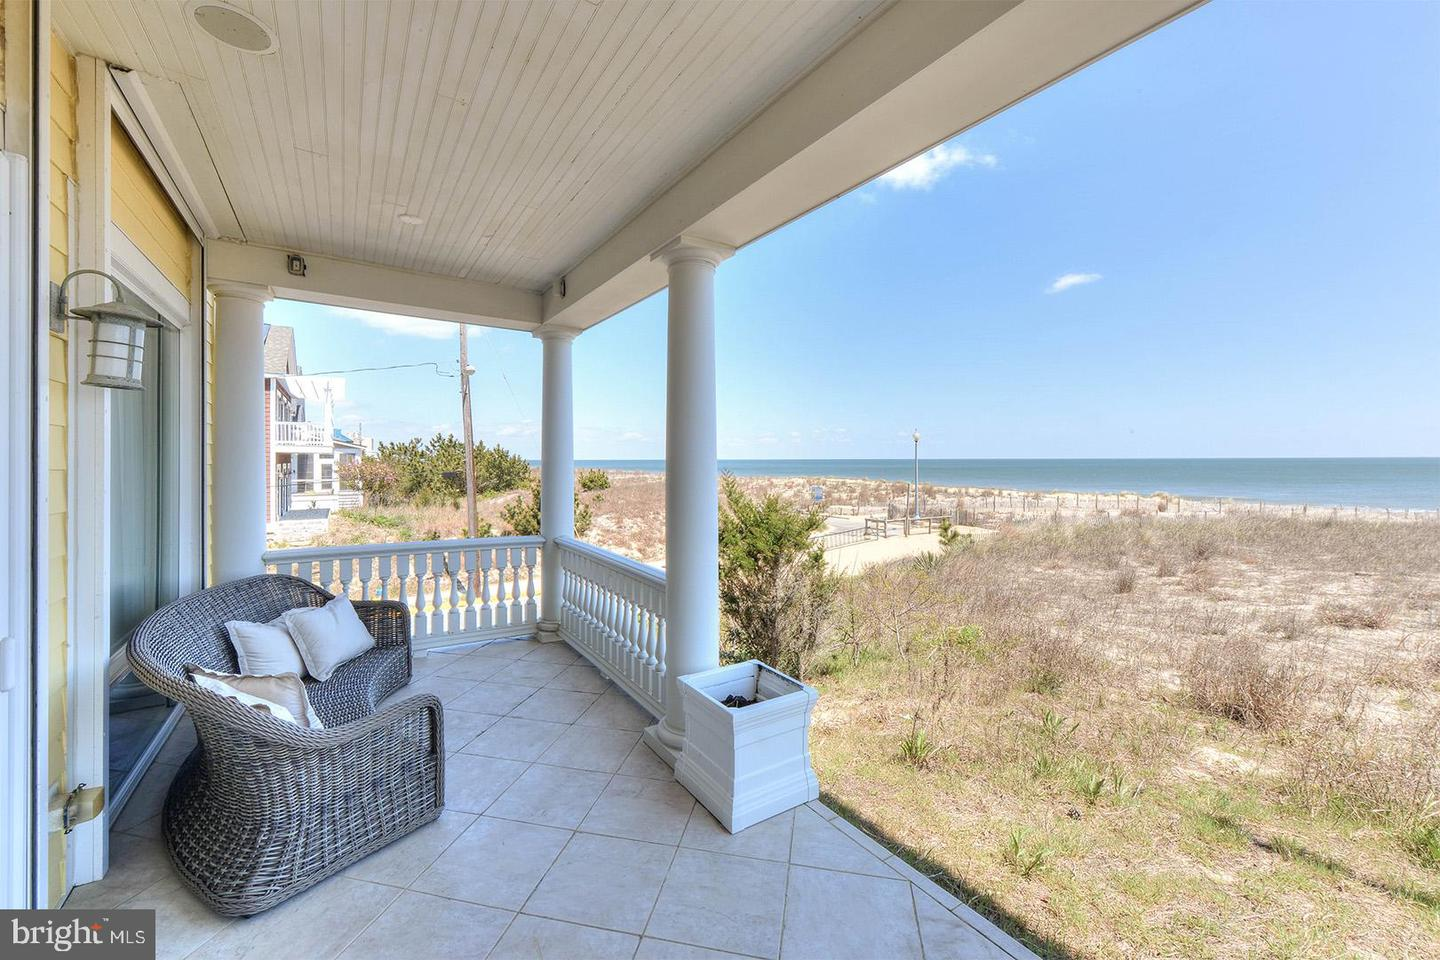 DESU159700-304100430520-2020-05-01-17-16-50 4 Prospect St | Rehoboth Beach, DE Real Estate For Sale | MLS# Desu159700  - Lee Ann Group